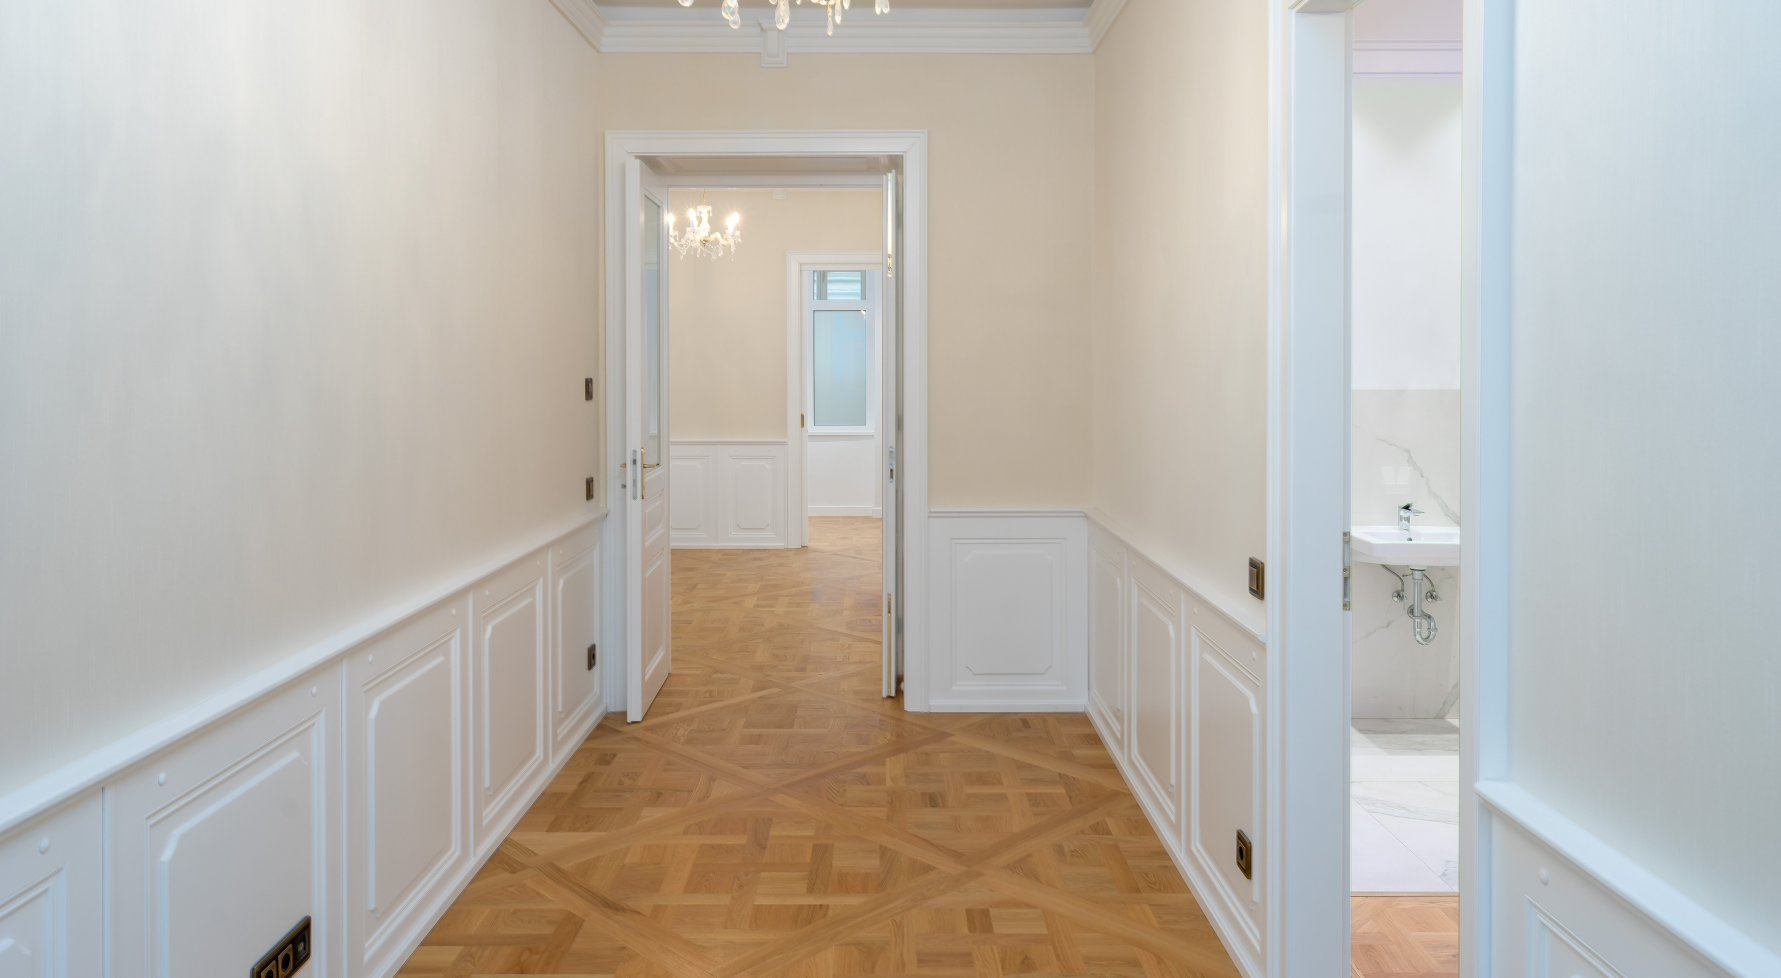 Property in 1010 Wien, 1. Bezirk: Imperial old apartment looks for long-term relationship! - picture 1